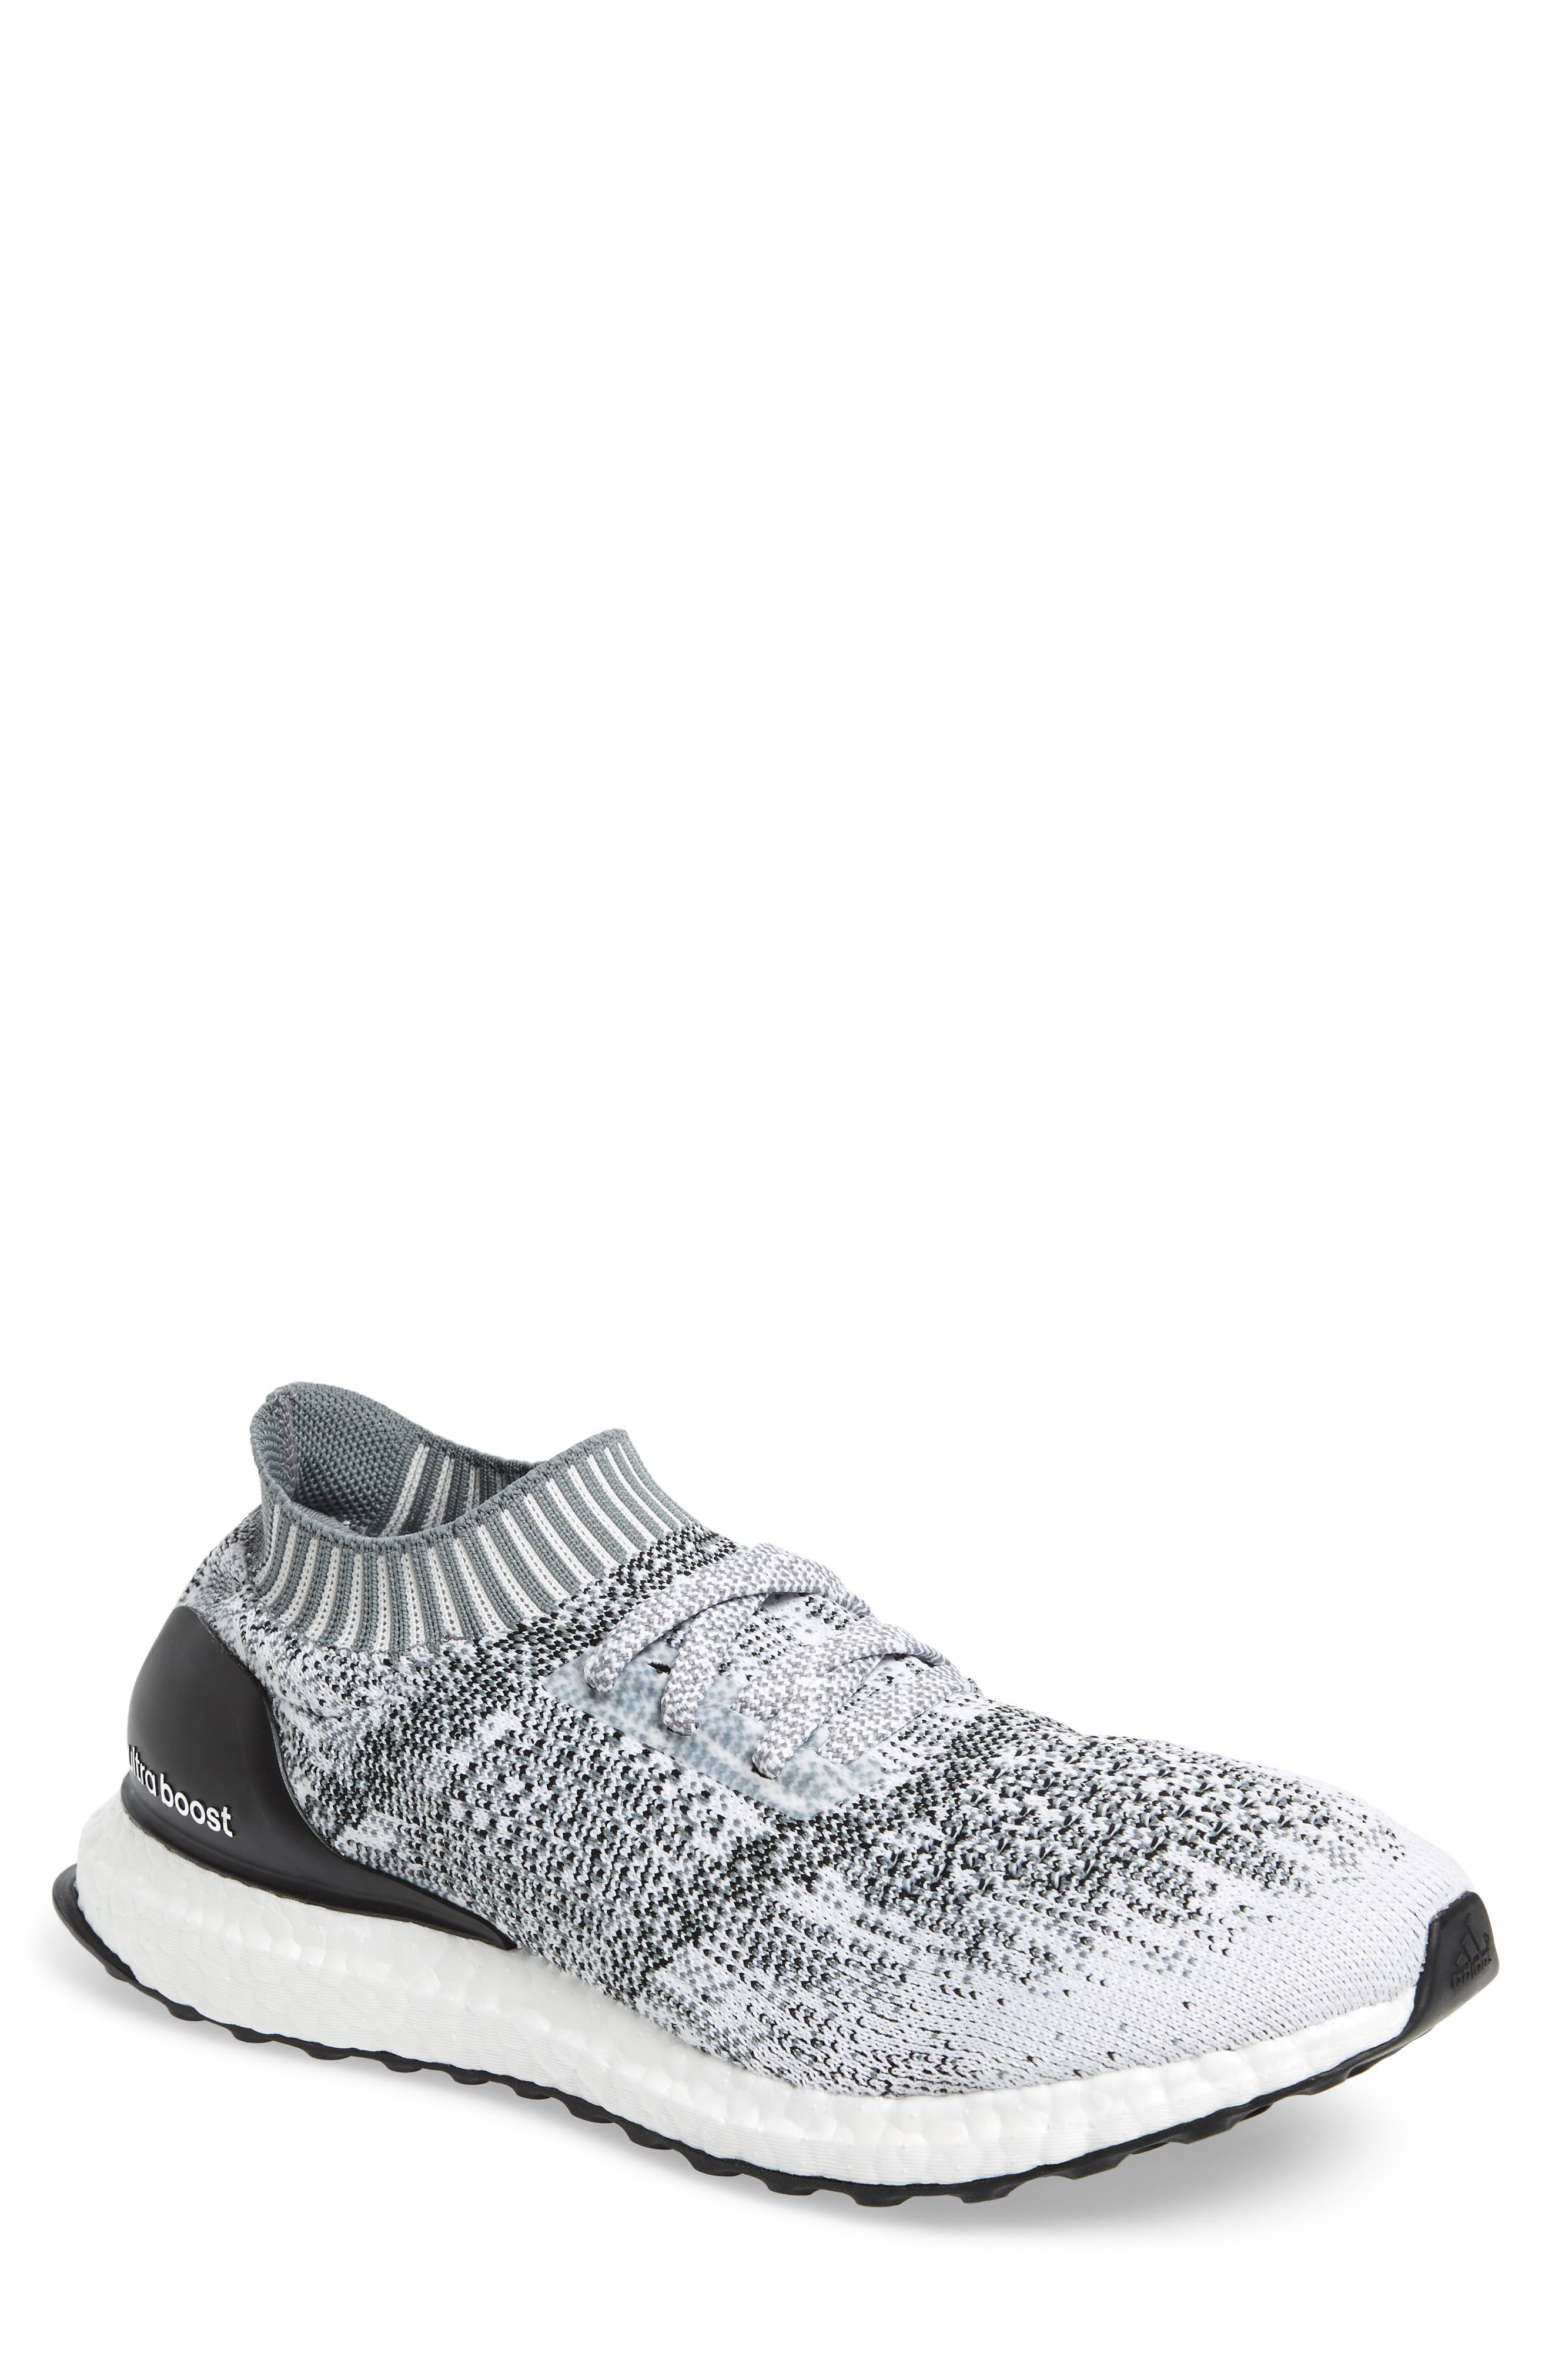 ADIDAS 'UltraBoost Uncaged' Running Shoe, Main, color, 026